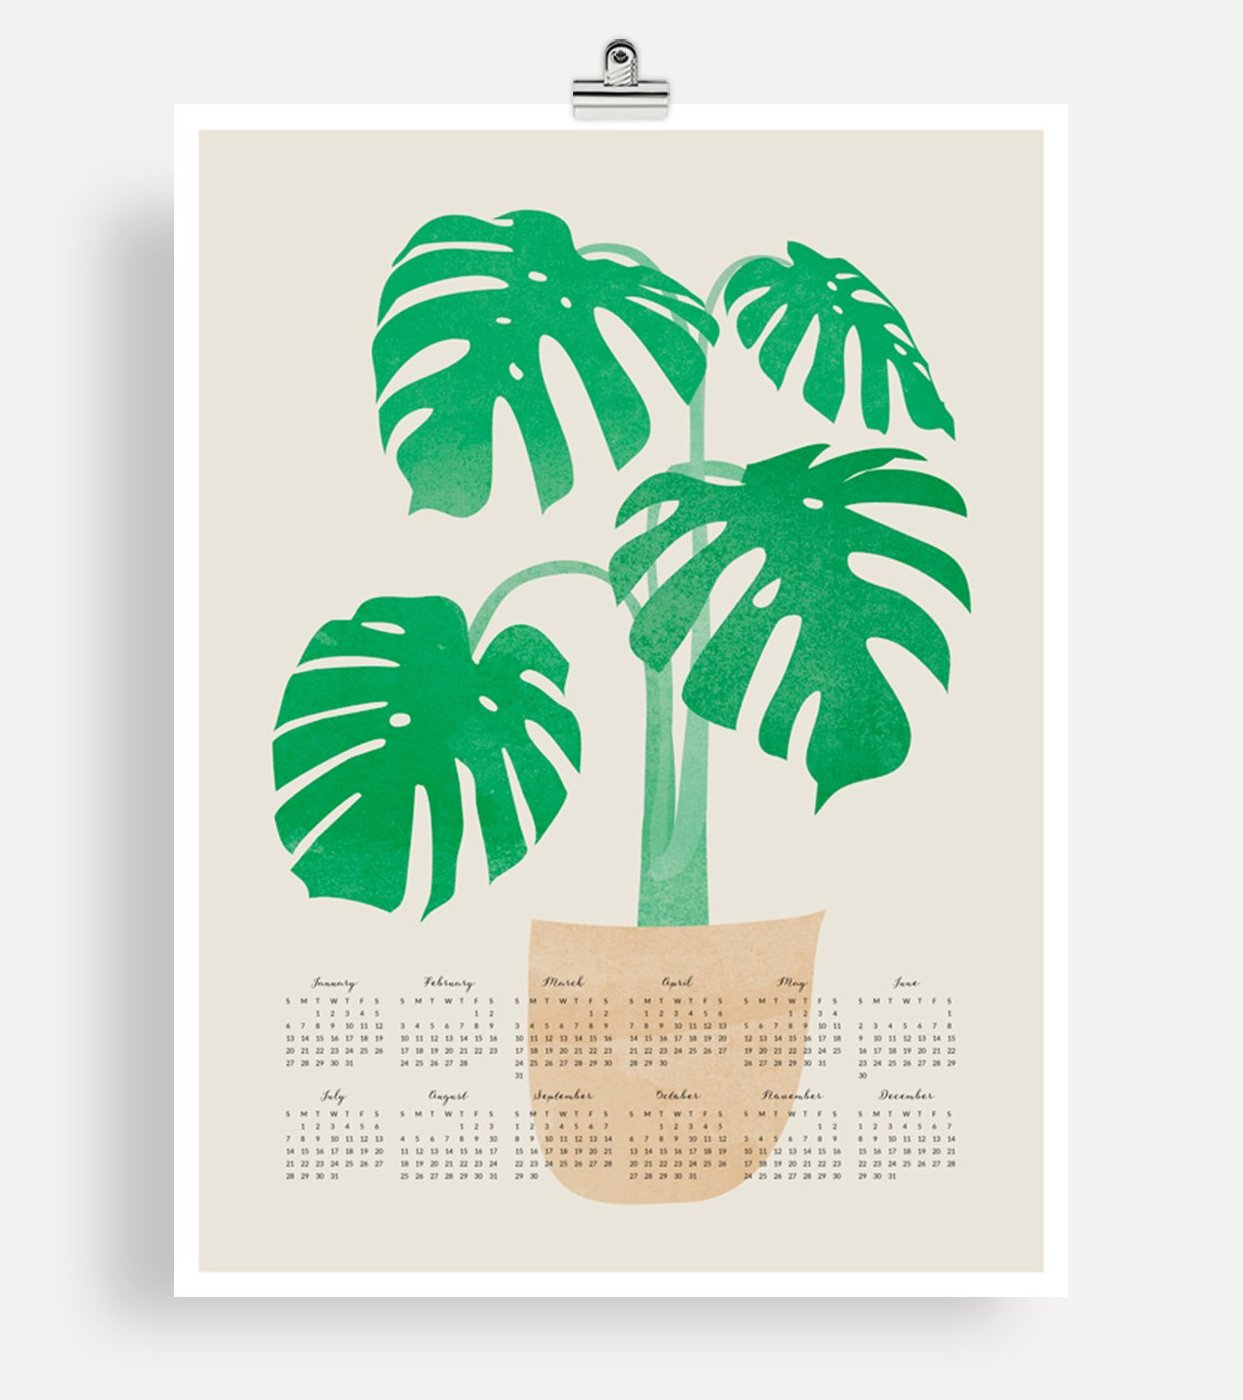 2019 Large Wall Calendar - Monstera